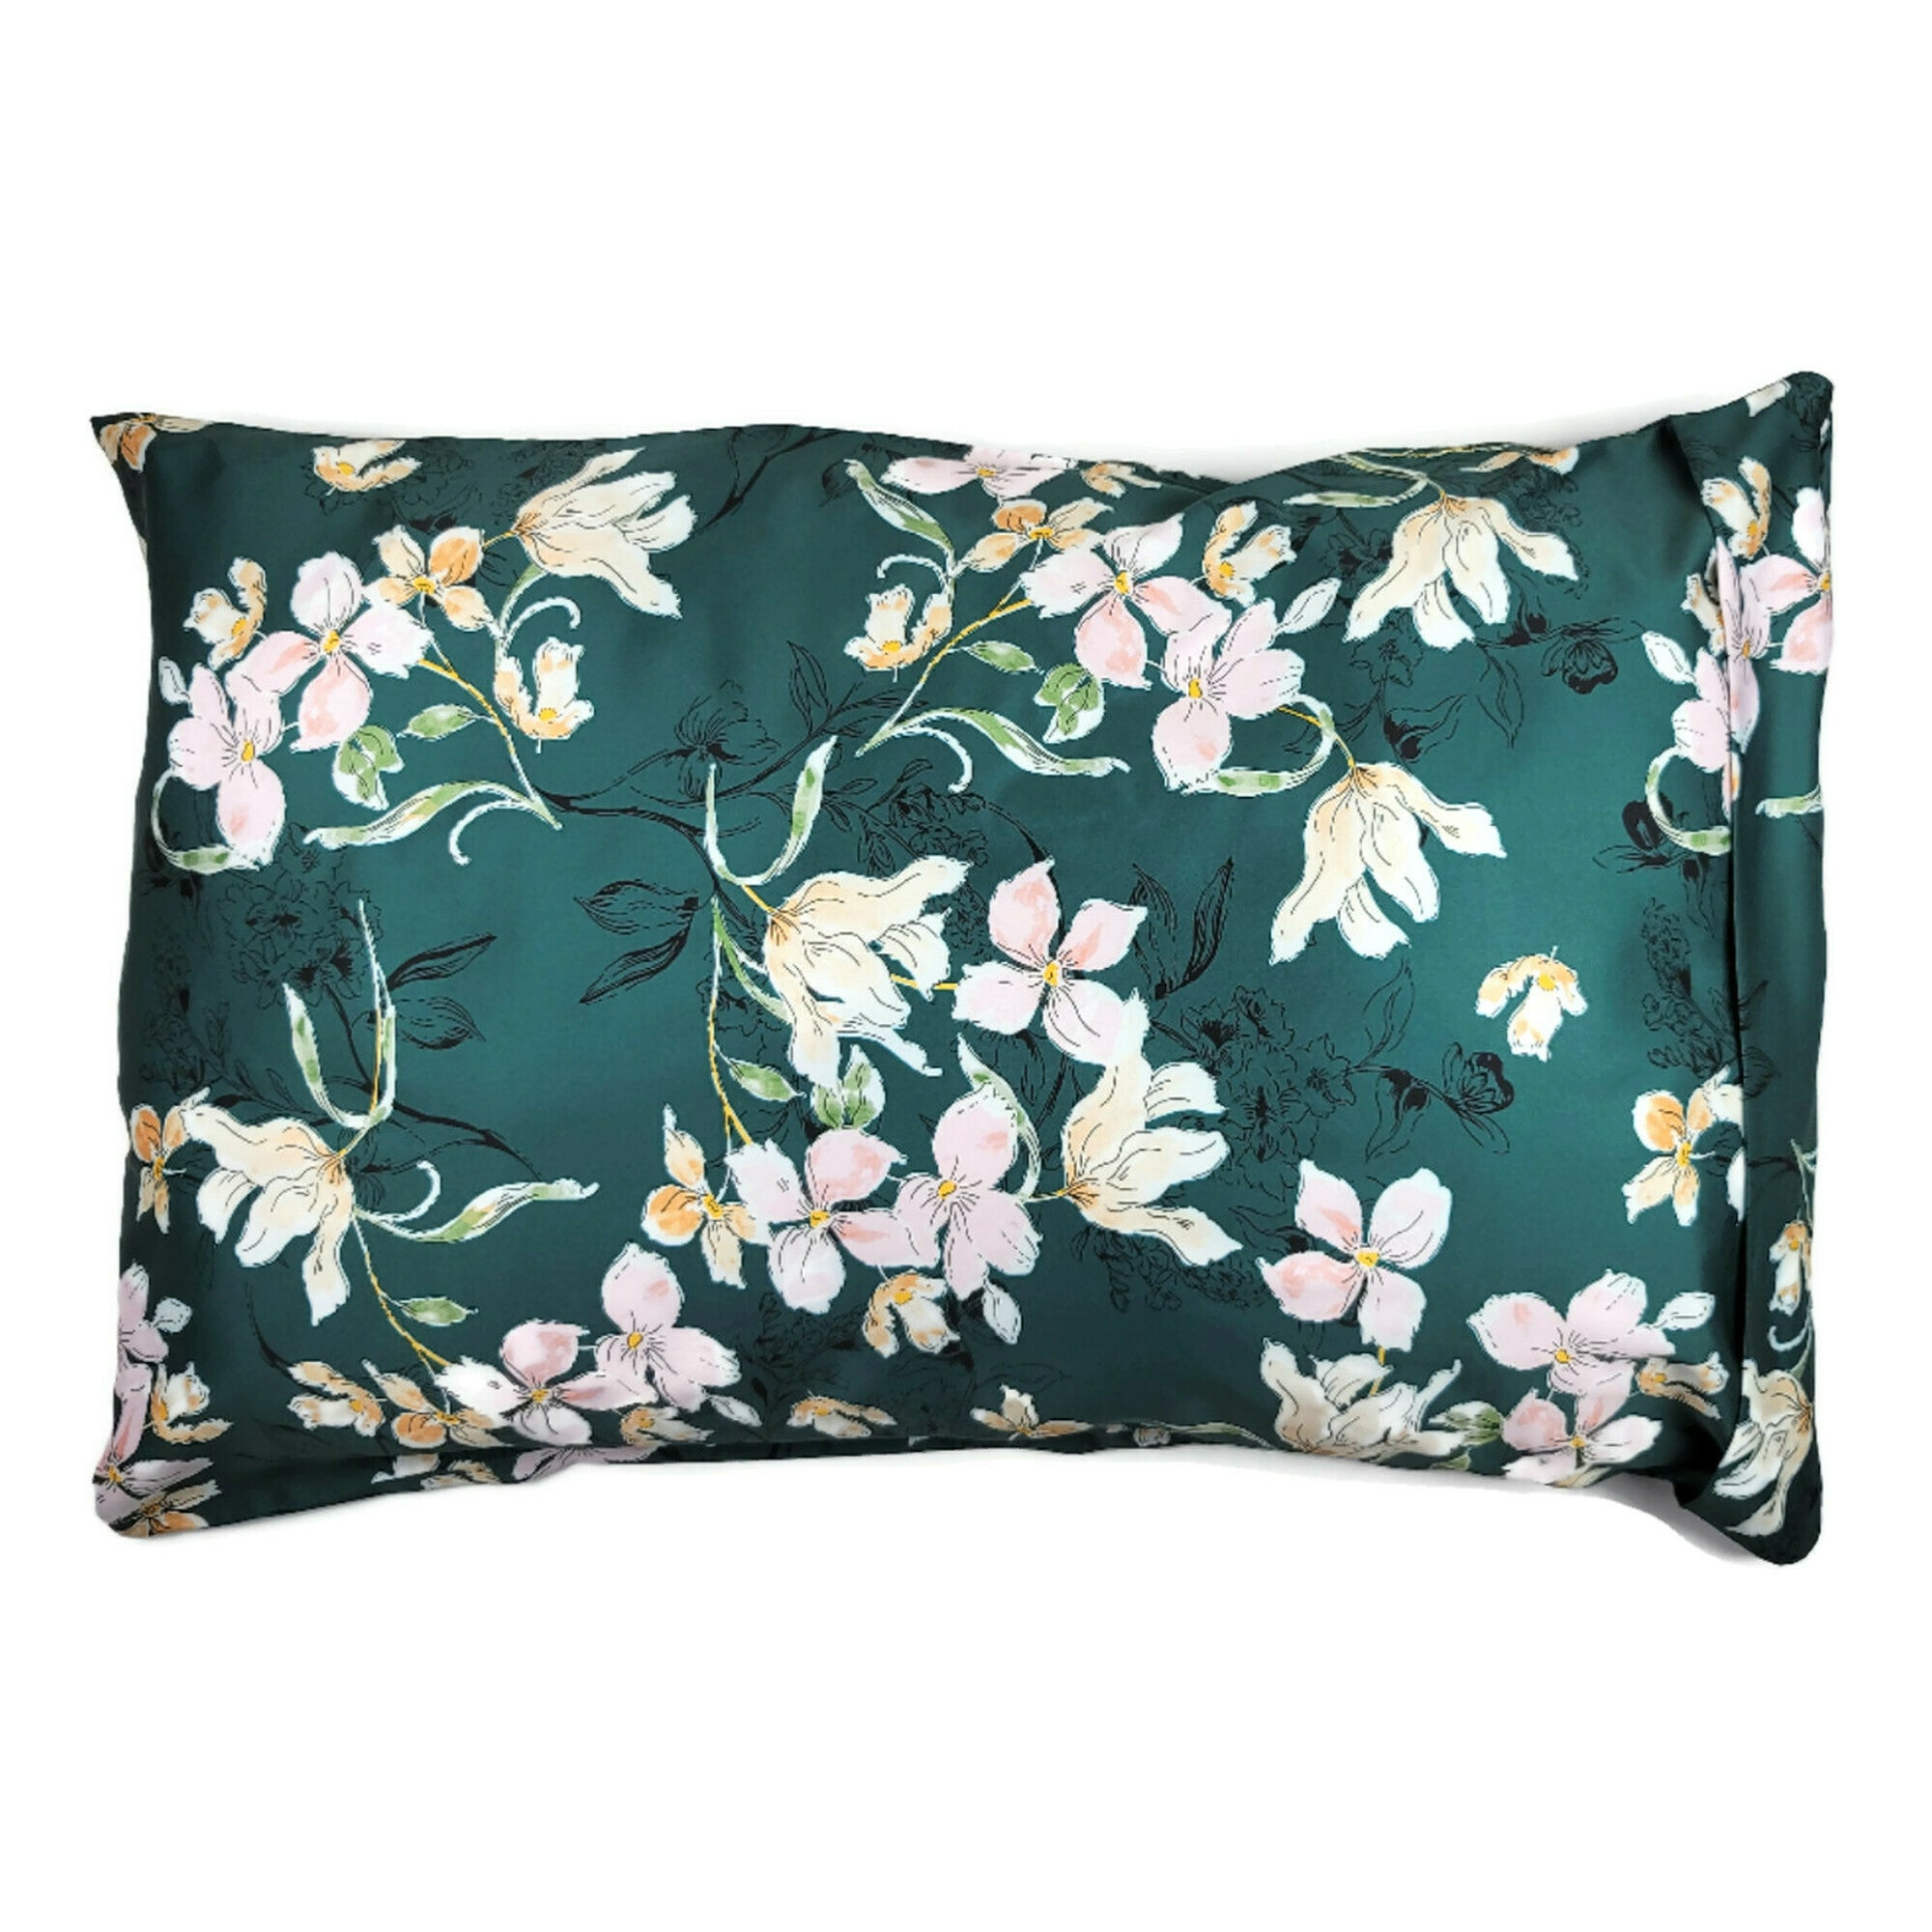 Luxe Satin Zippered Pillowcase - Teal Floral